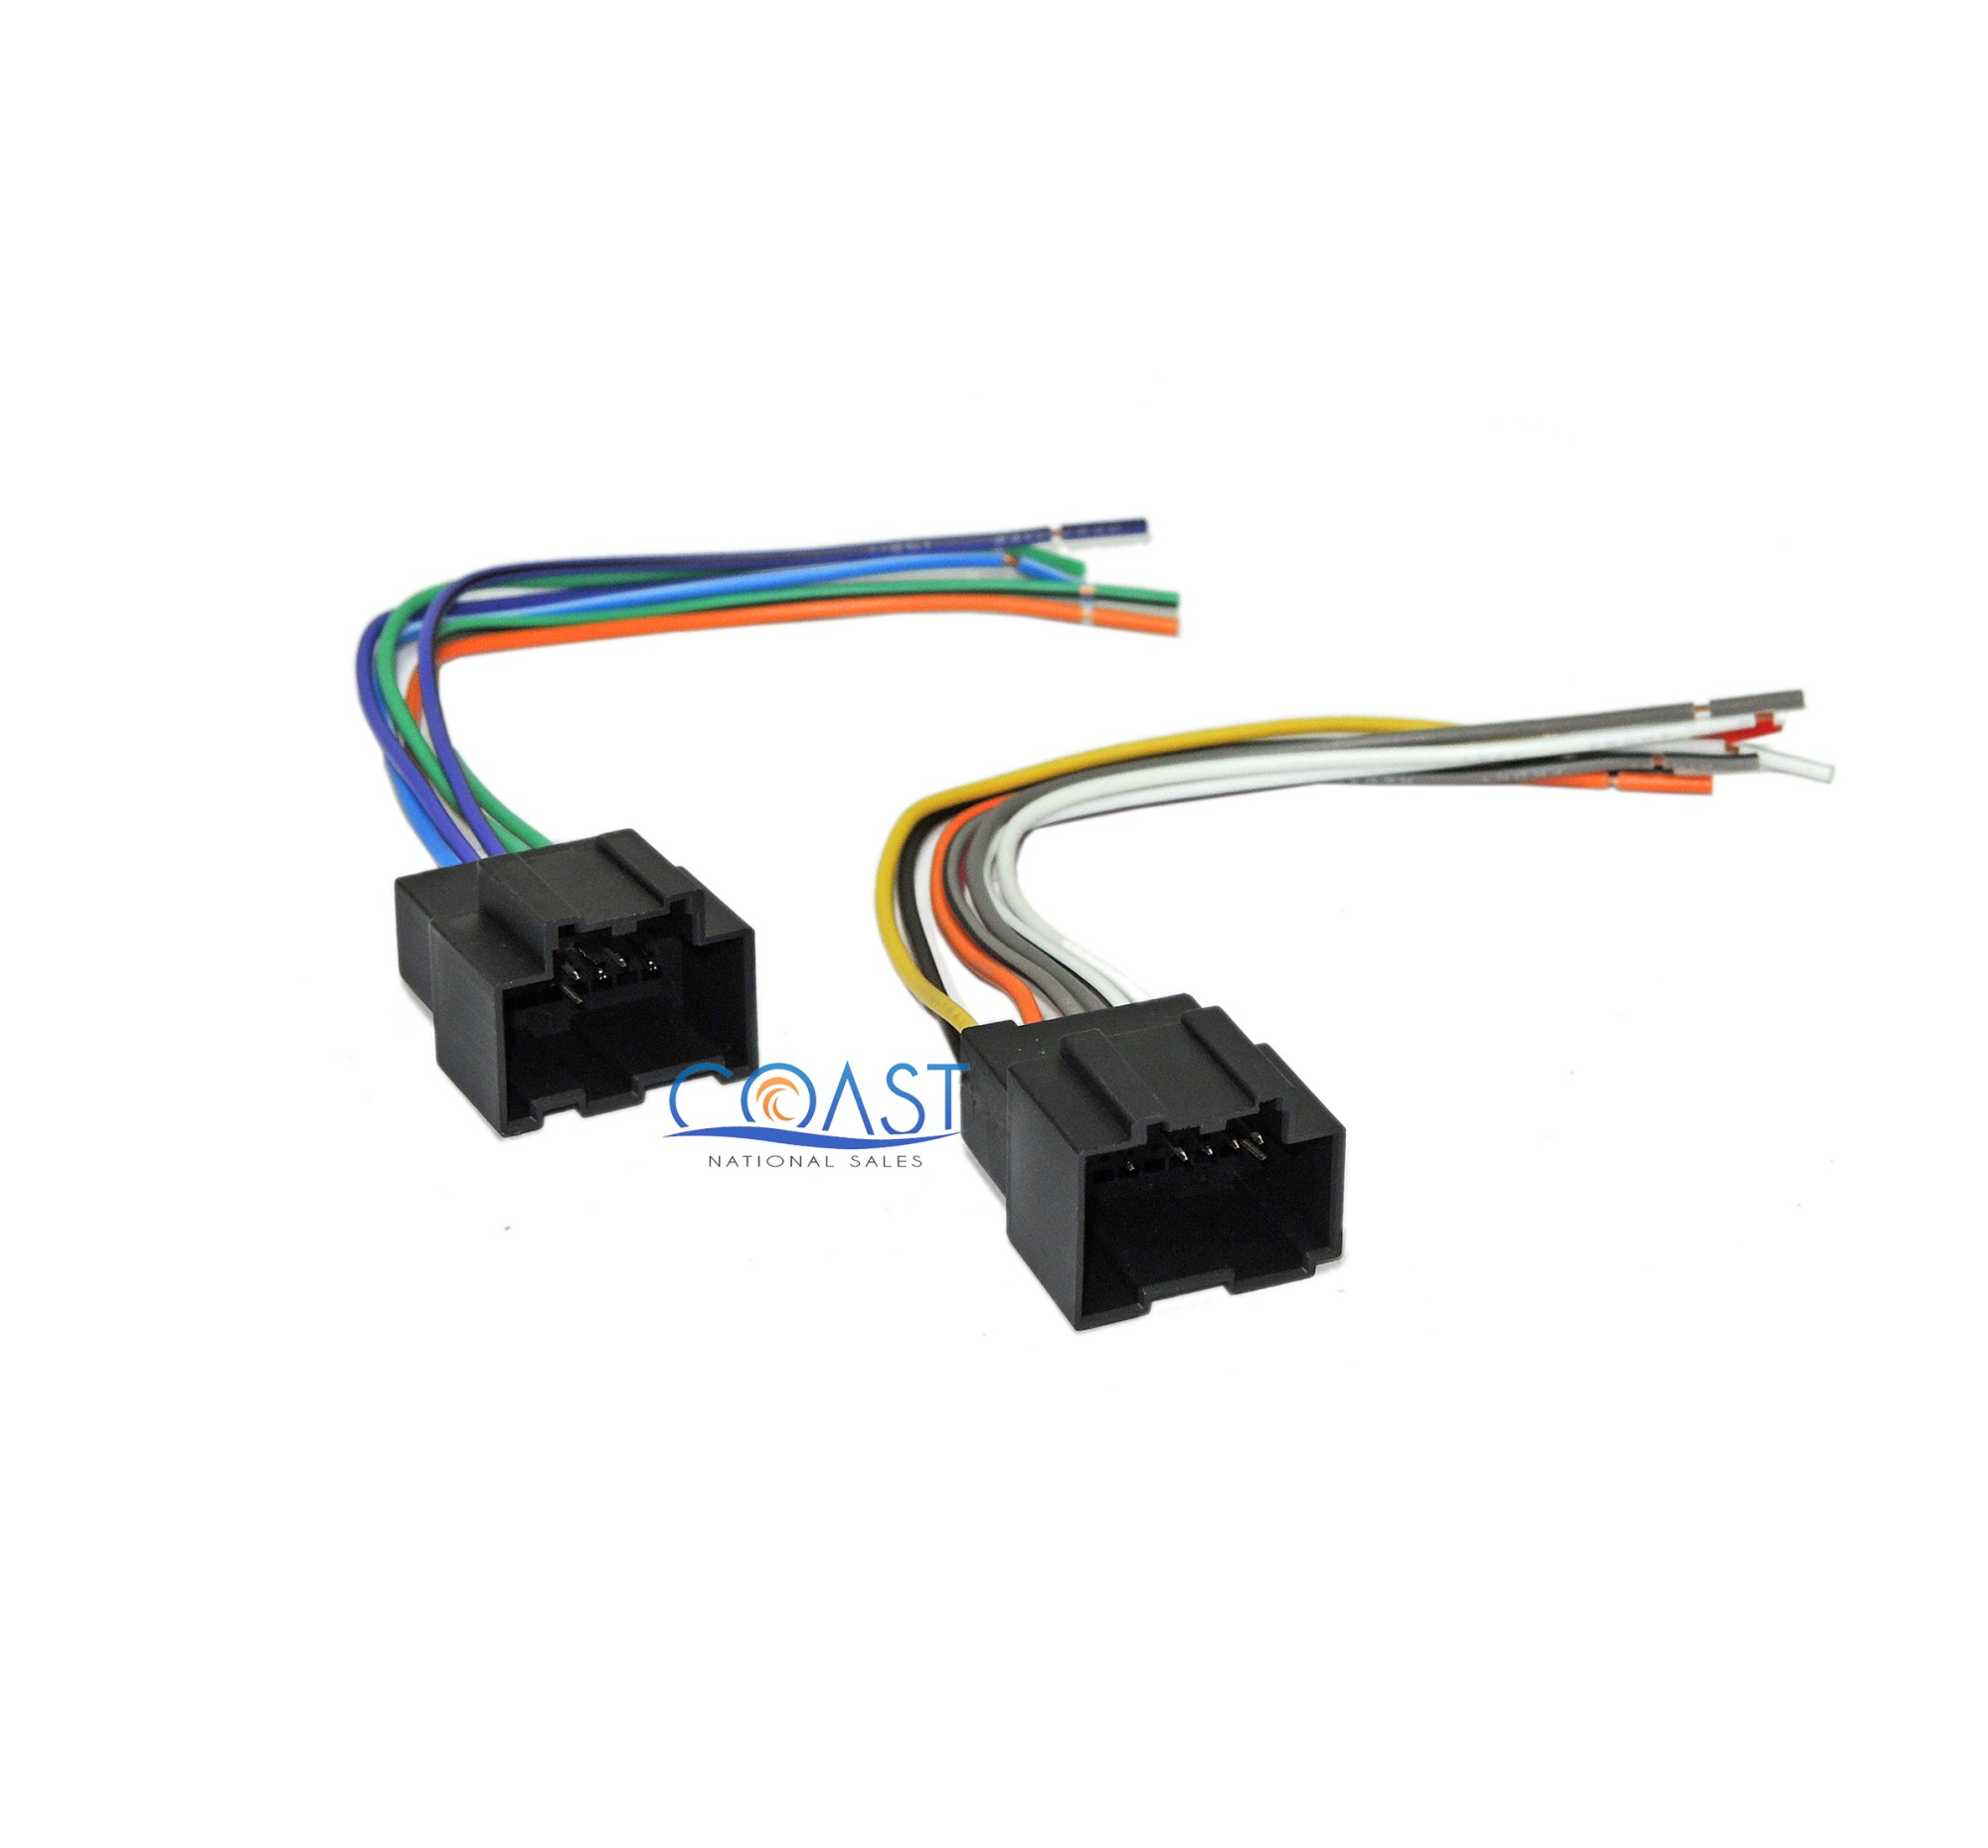 hight resolution of car stereo harness plugs into factory harness for 2006 2007 saturn ion vue